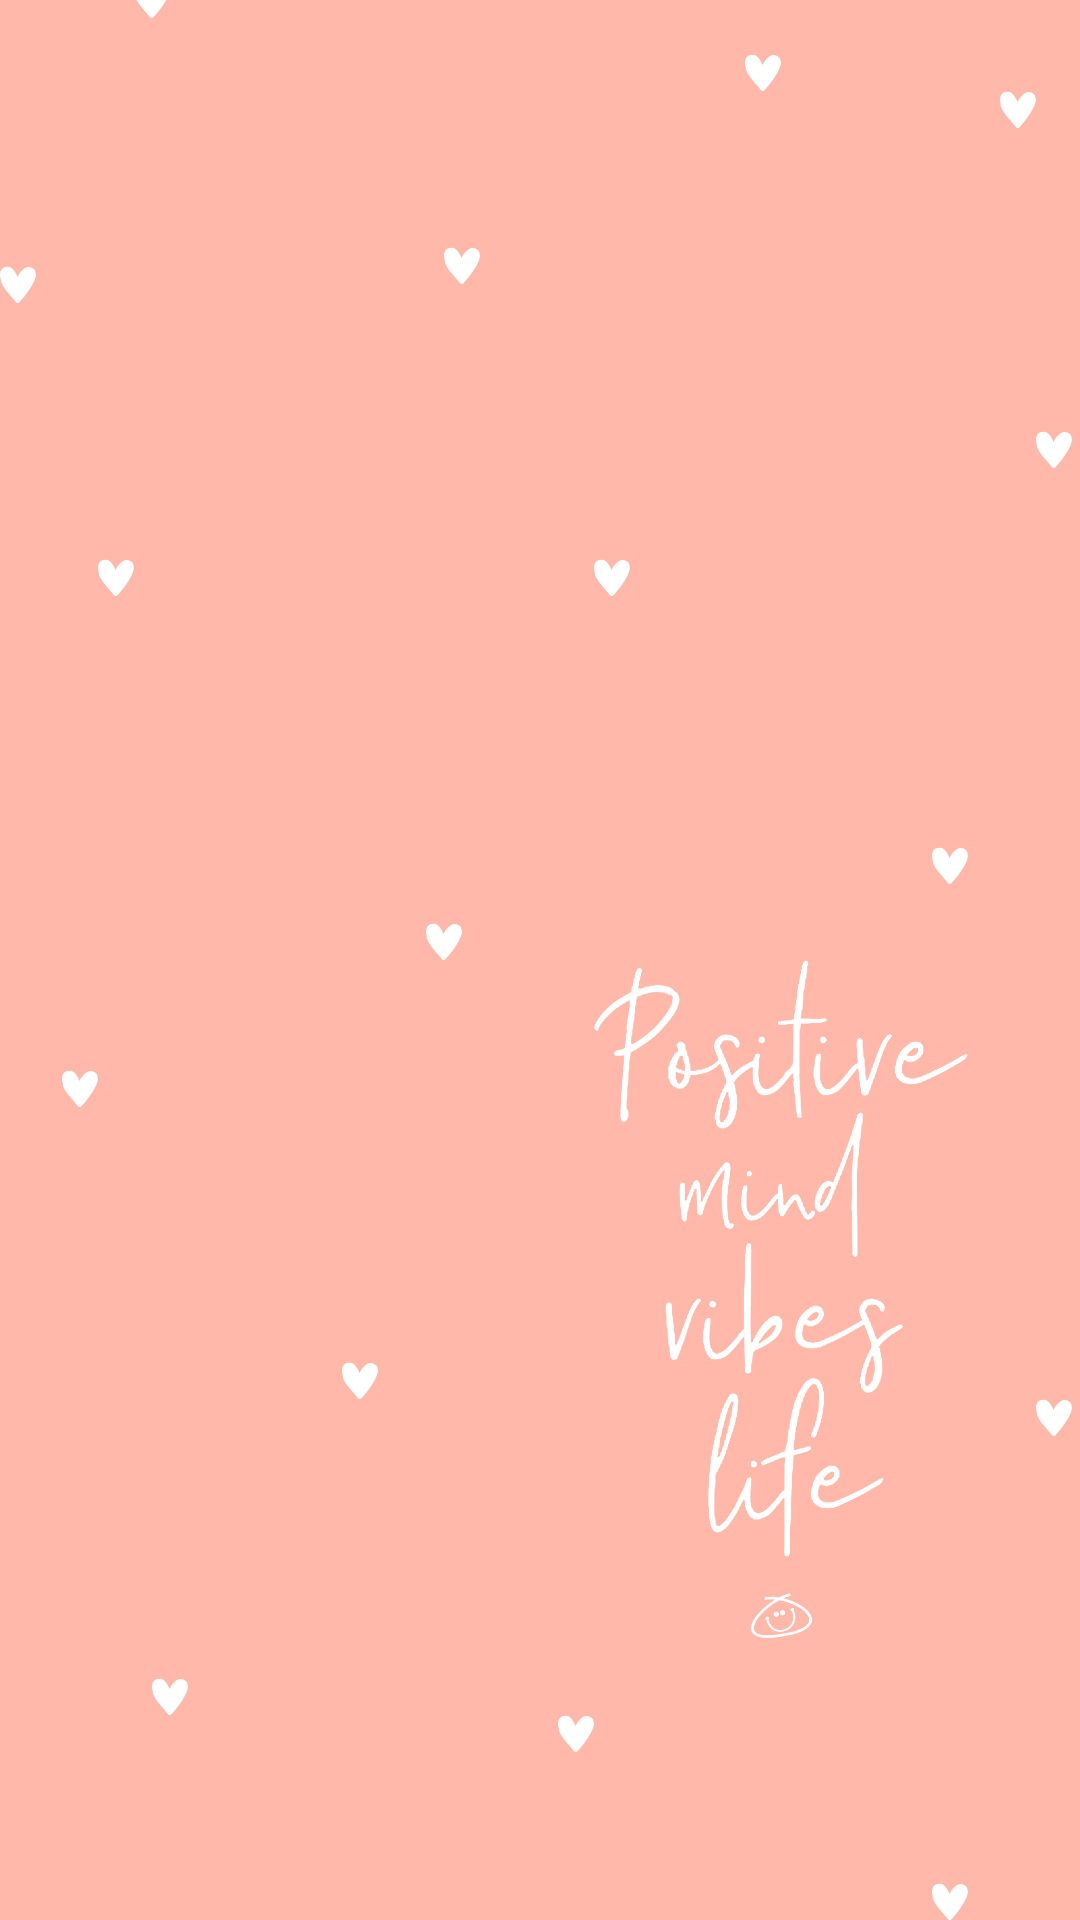 Free Colorful Smartphone Wallpaper - Positive mind vibes life